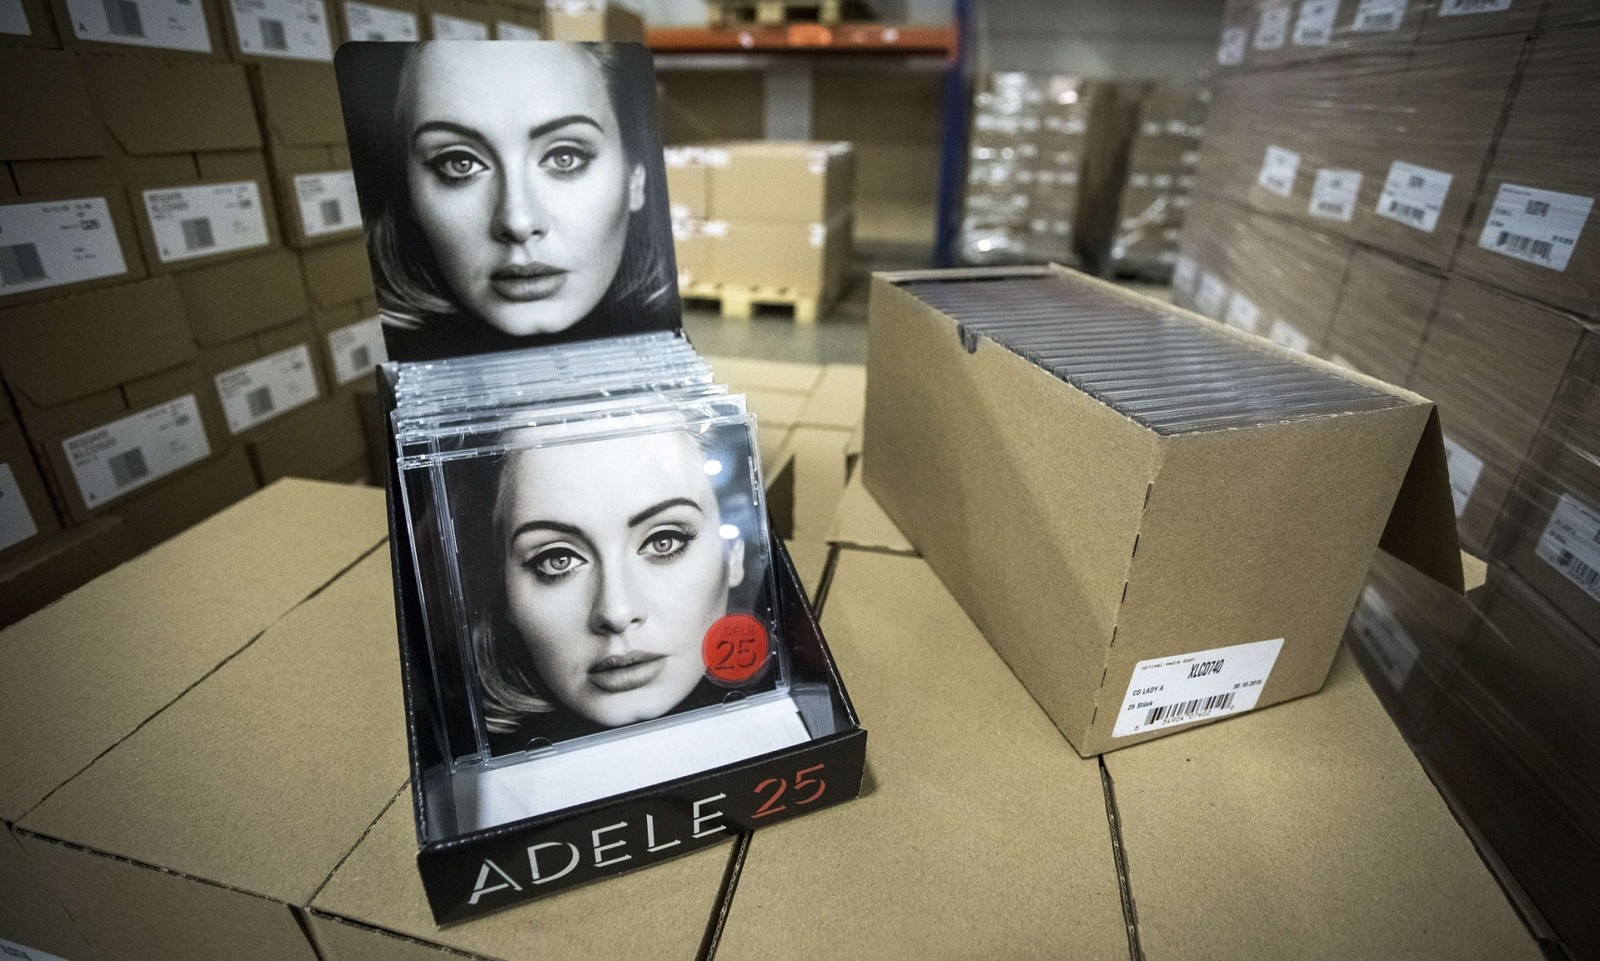 Adele's new album is doing okay